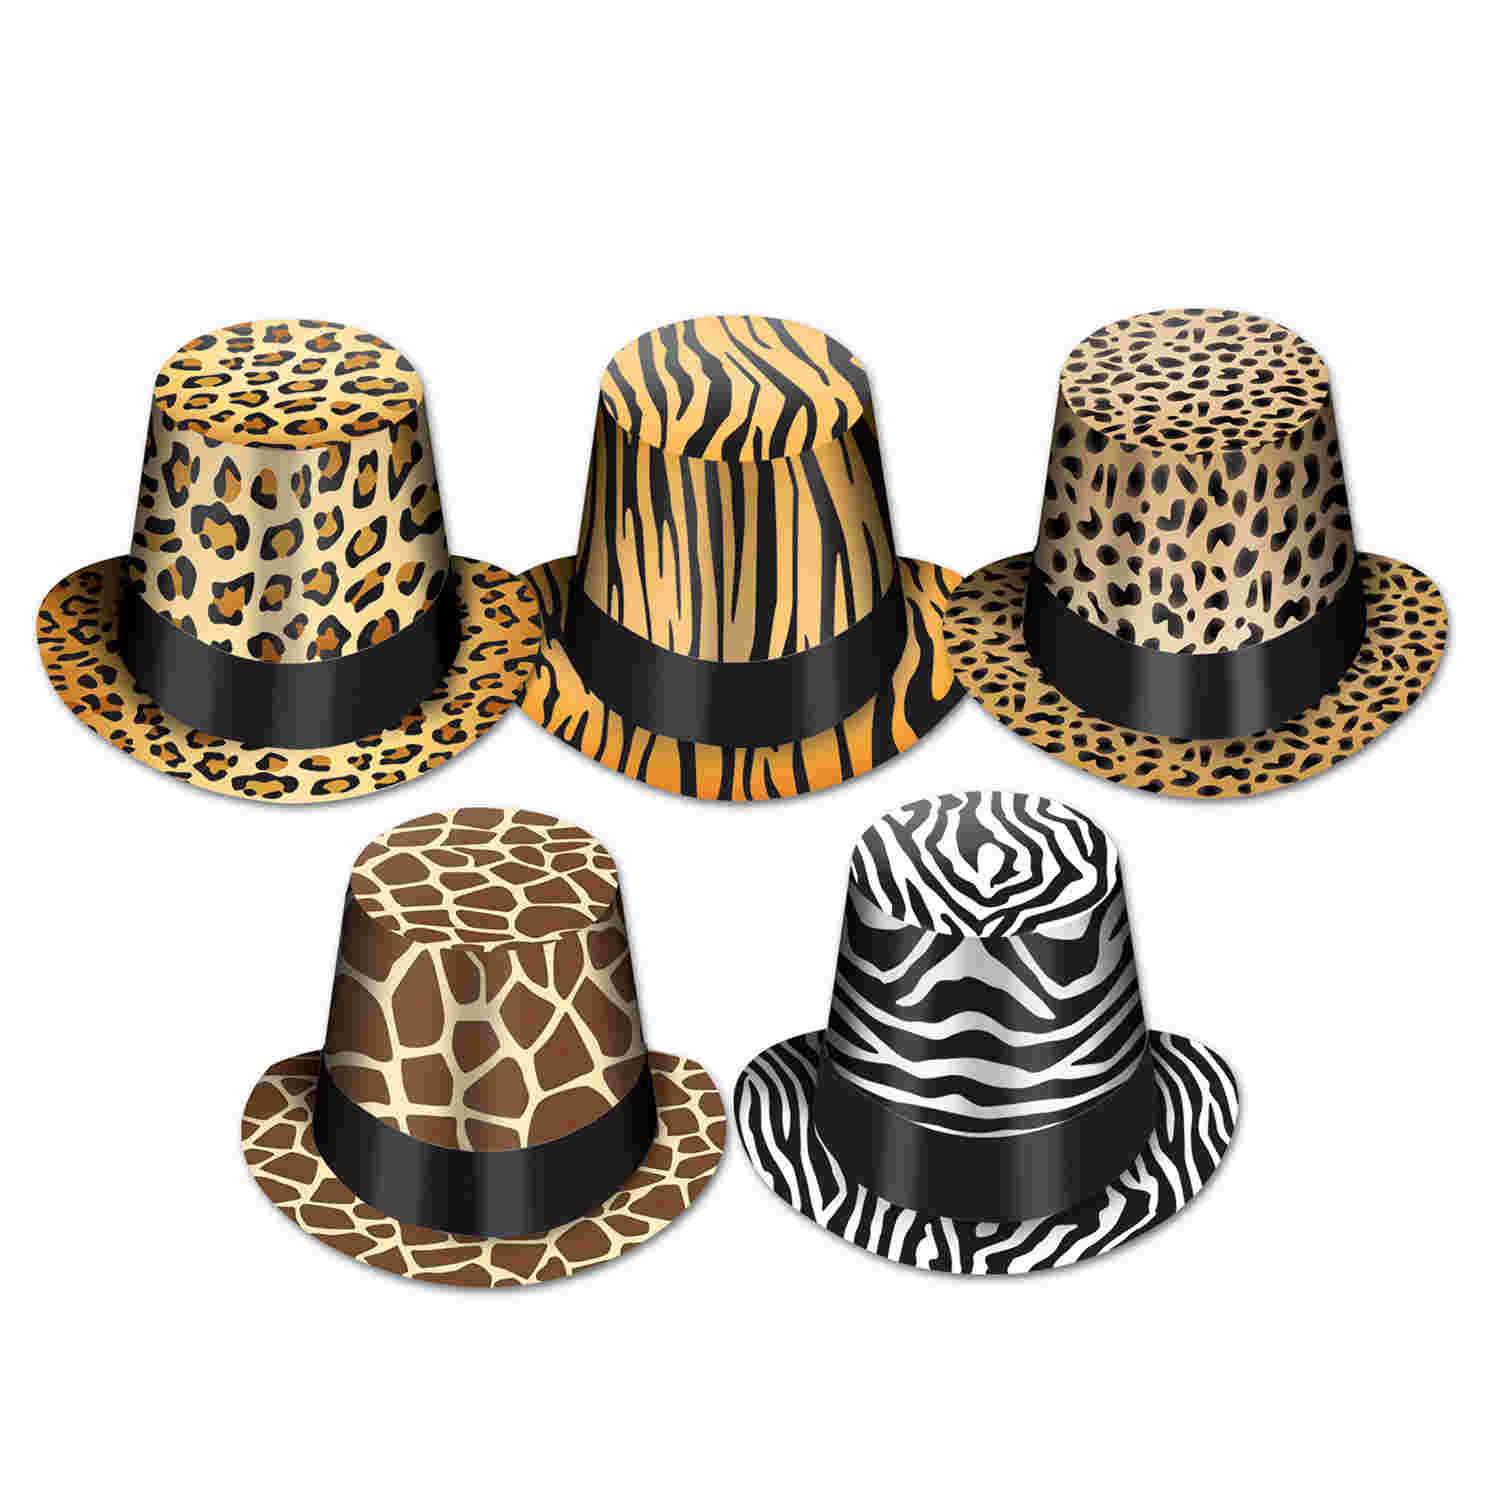 party hats with jungle printed designs on the such as zebra print and leopard print